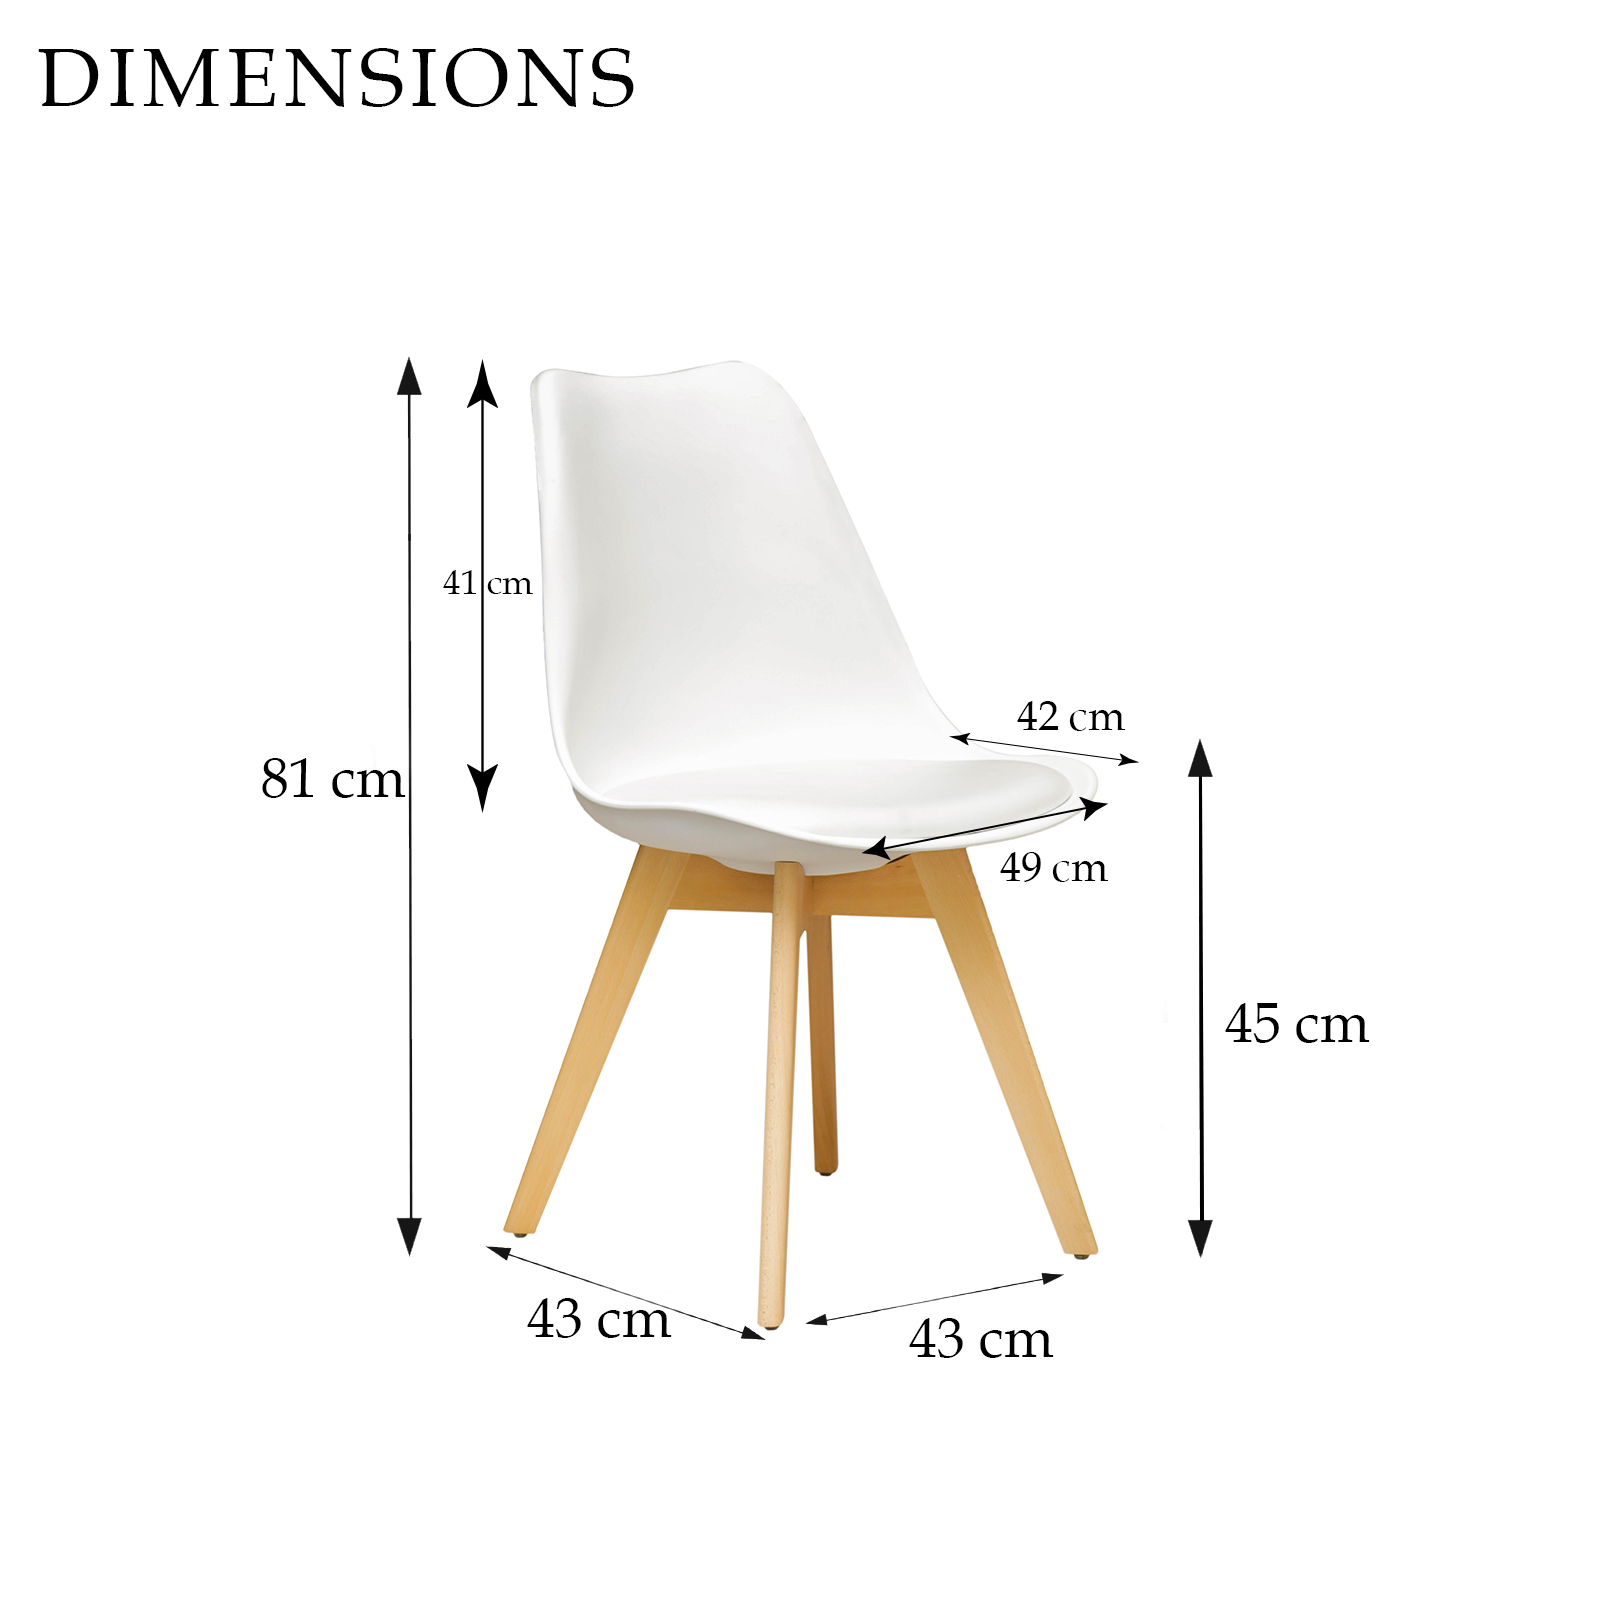 City Small Dining Table 4 x Replica Eames Sisly ABS  : Sisly White dining Chair Dimensions from www.ebay.com.au size 1600 x 1600 jpeg 233kB